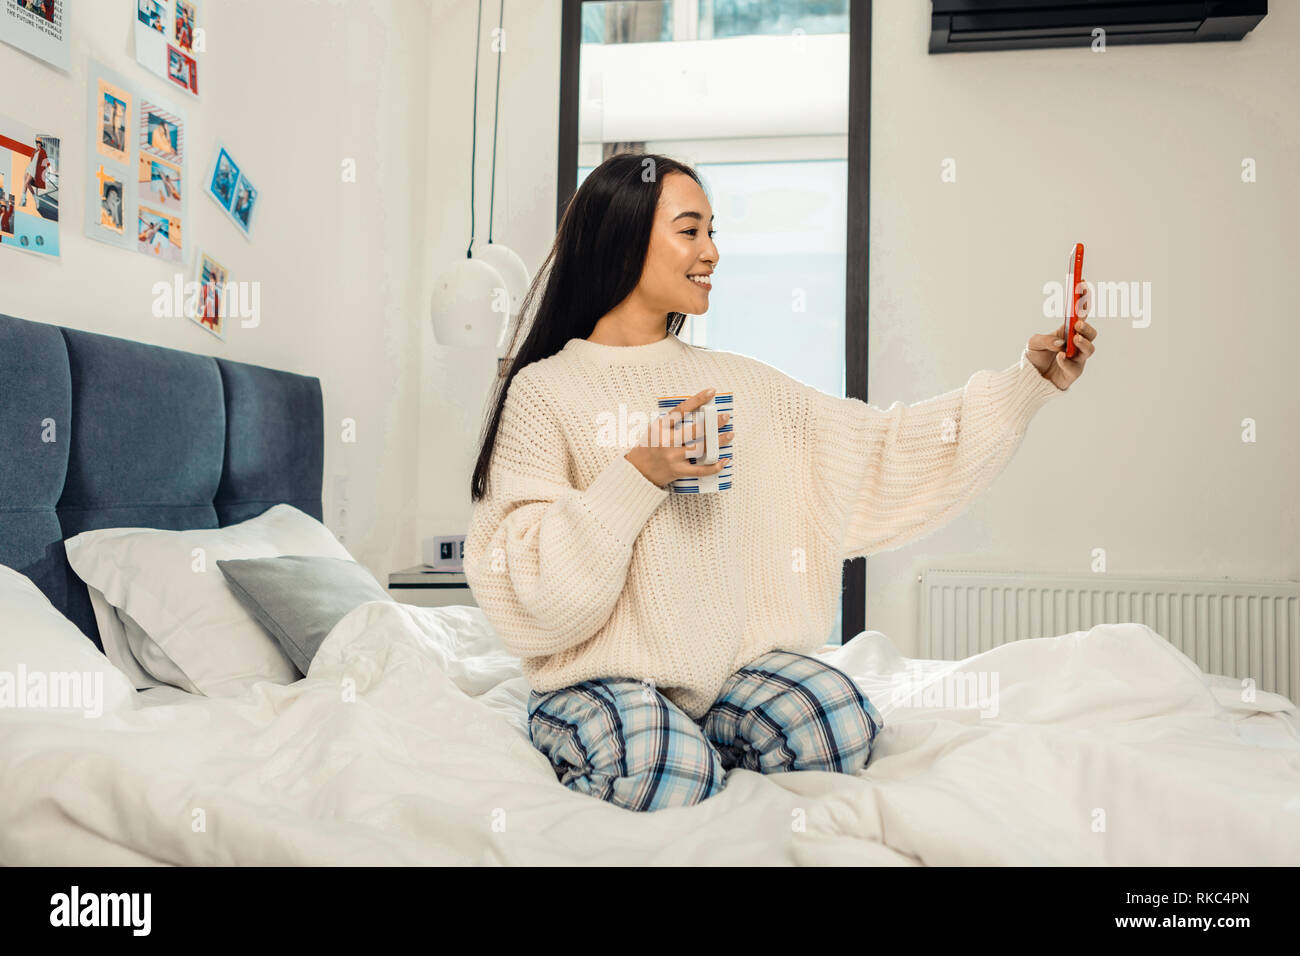 Dark-haired woman wearing comfy pink sweater making selfie - Stock Image